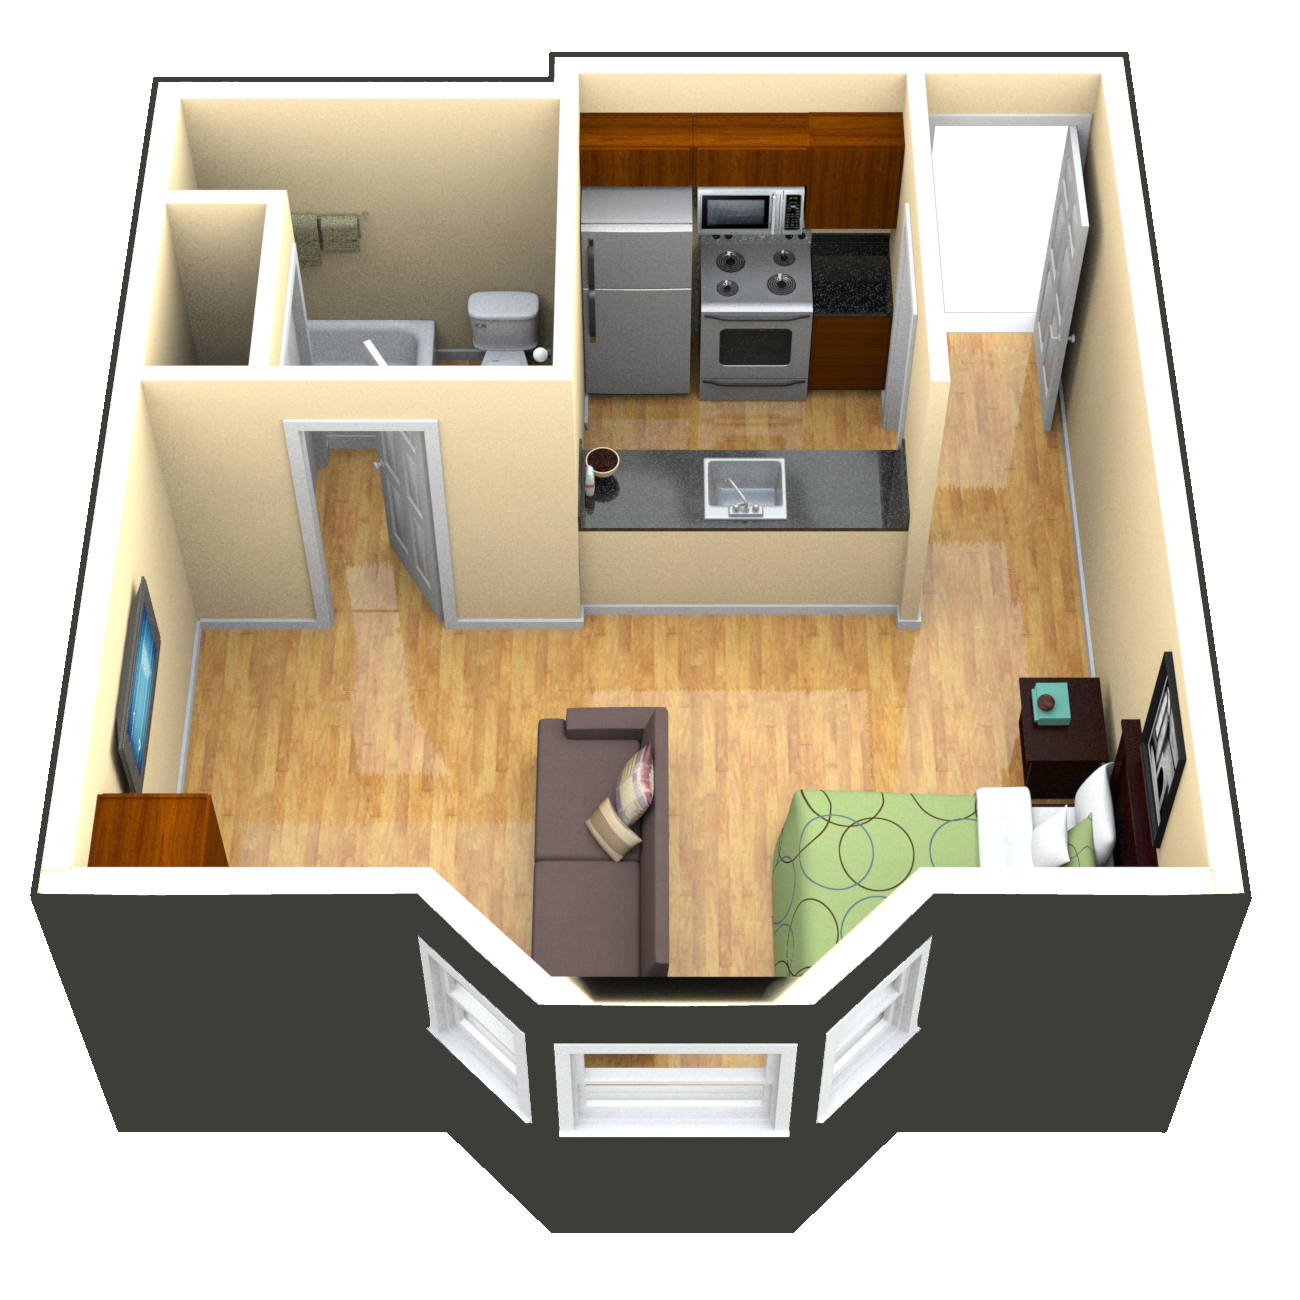 420 studio apartment floorplan google search studio for Garage studio apartment plans